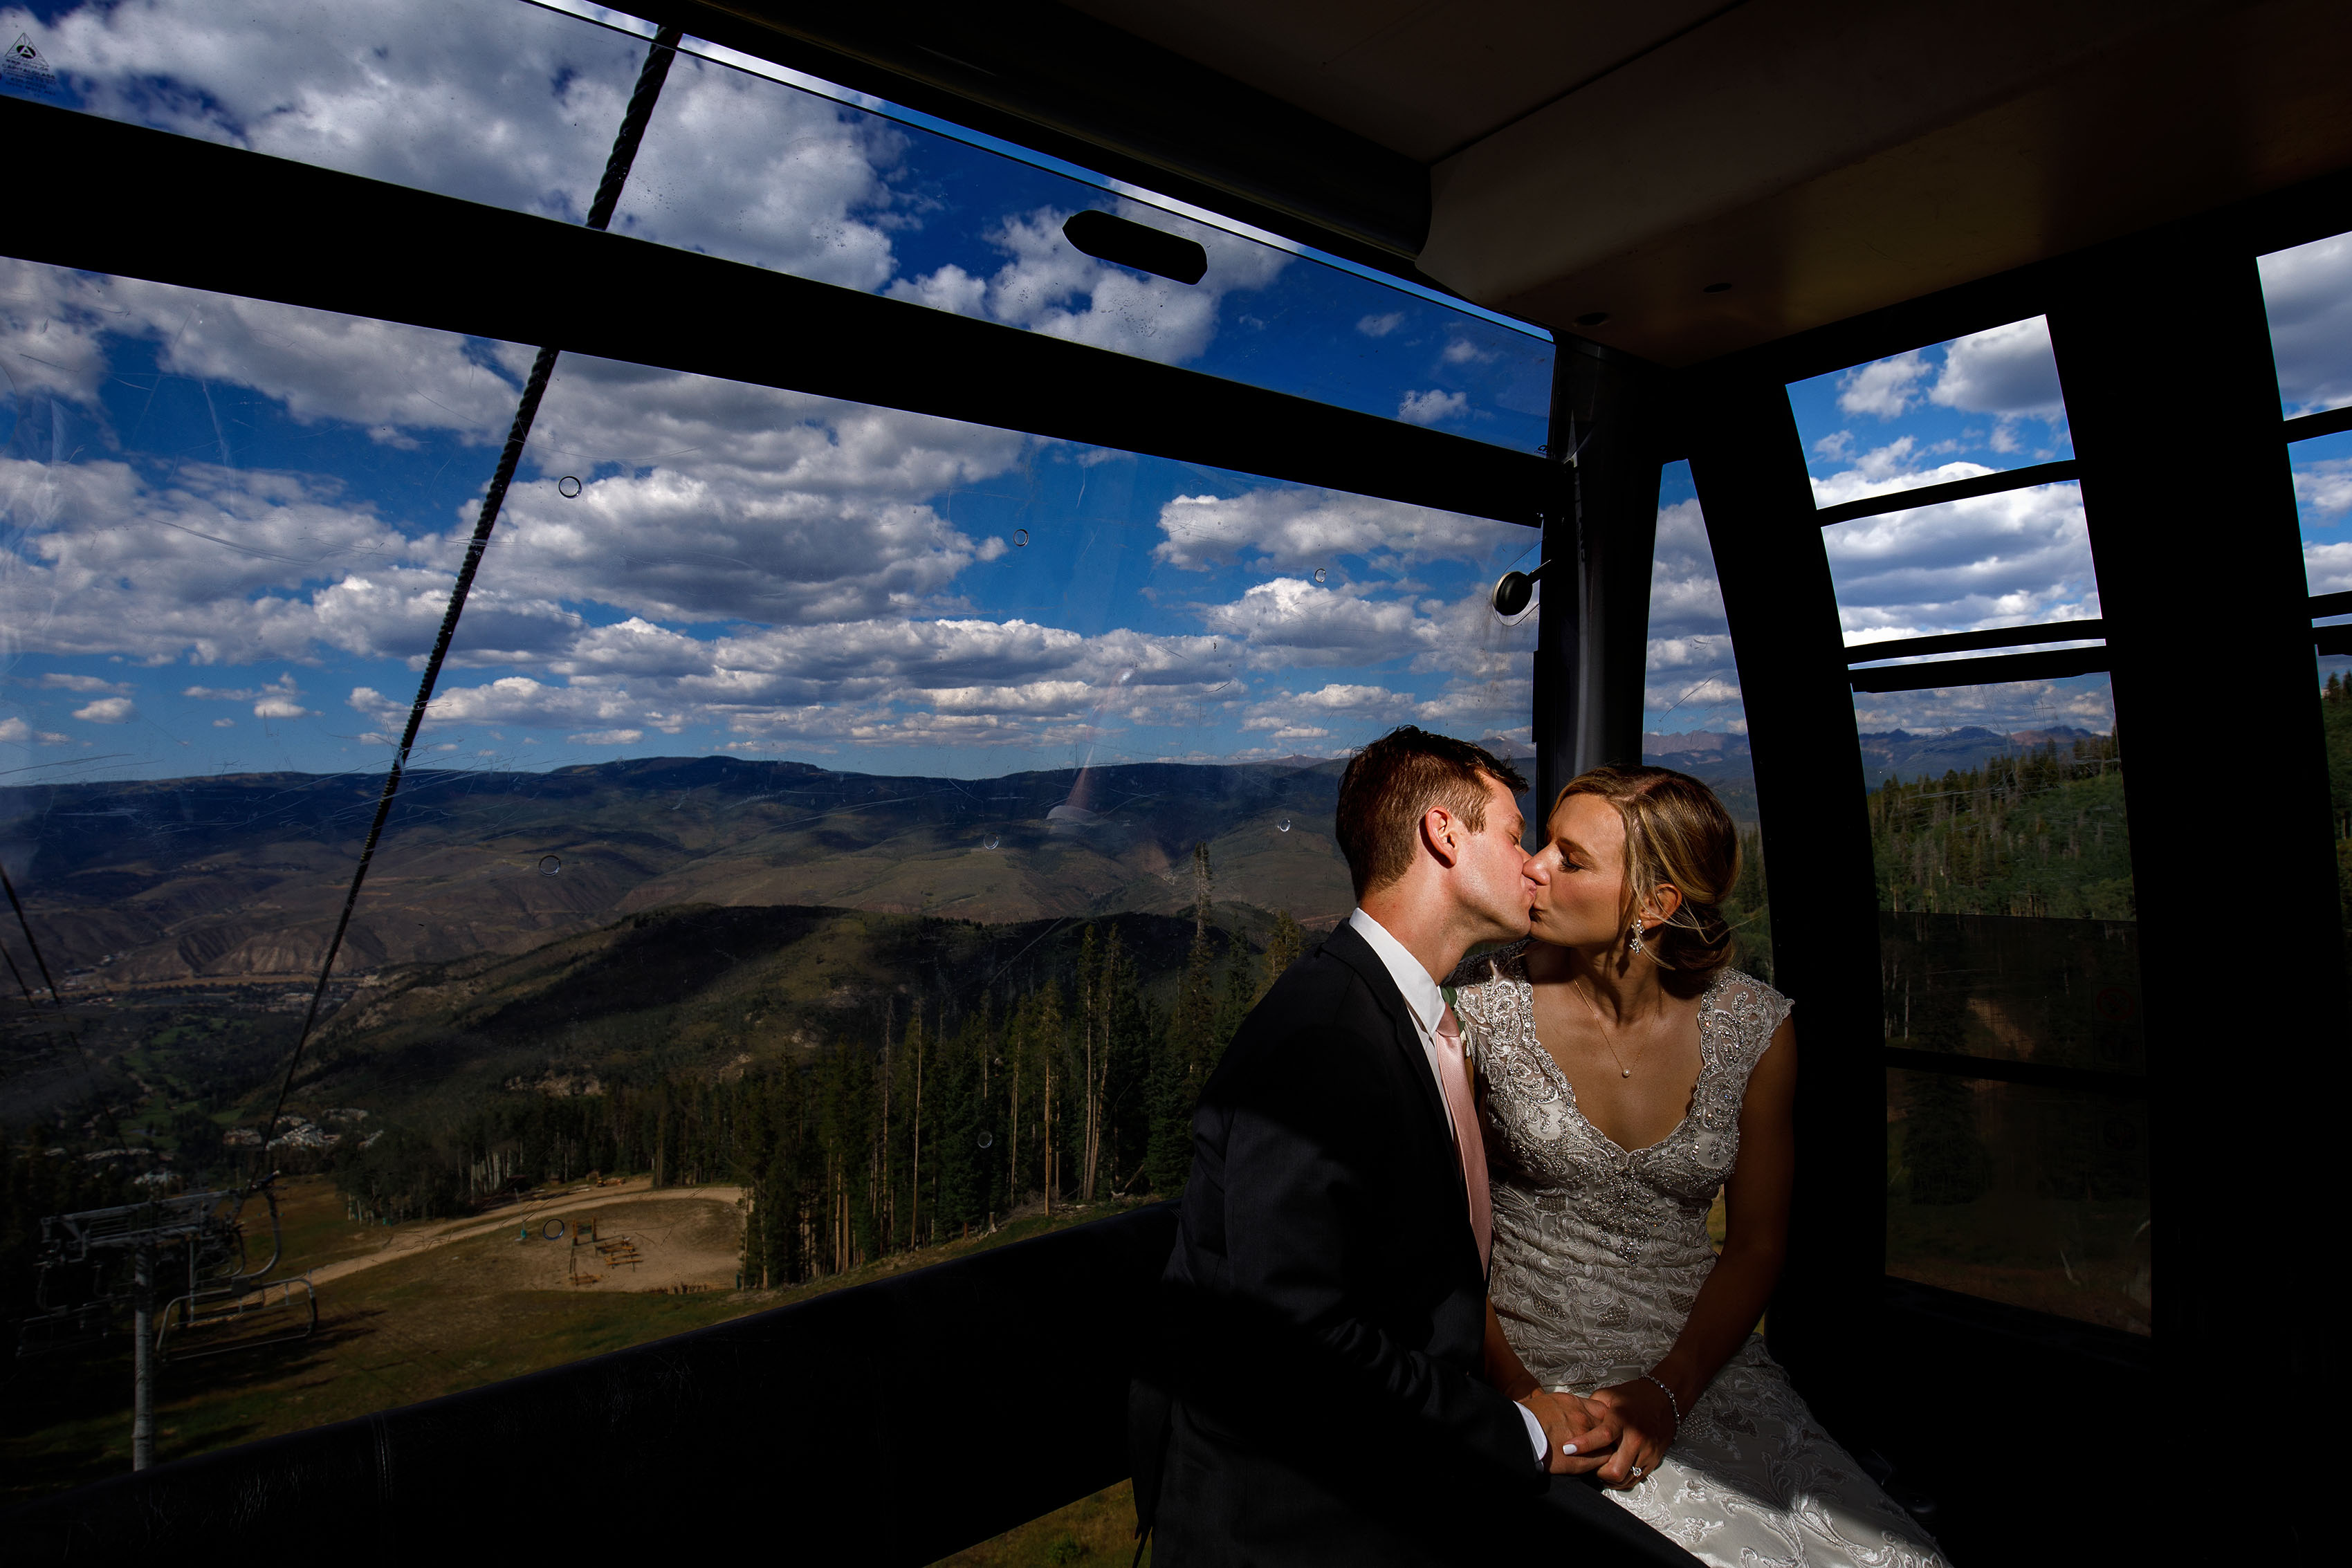 Melissa and Drew share a kiss in the Centennial Express gondola